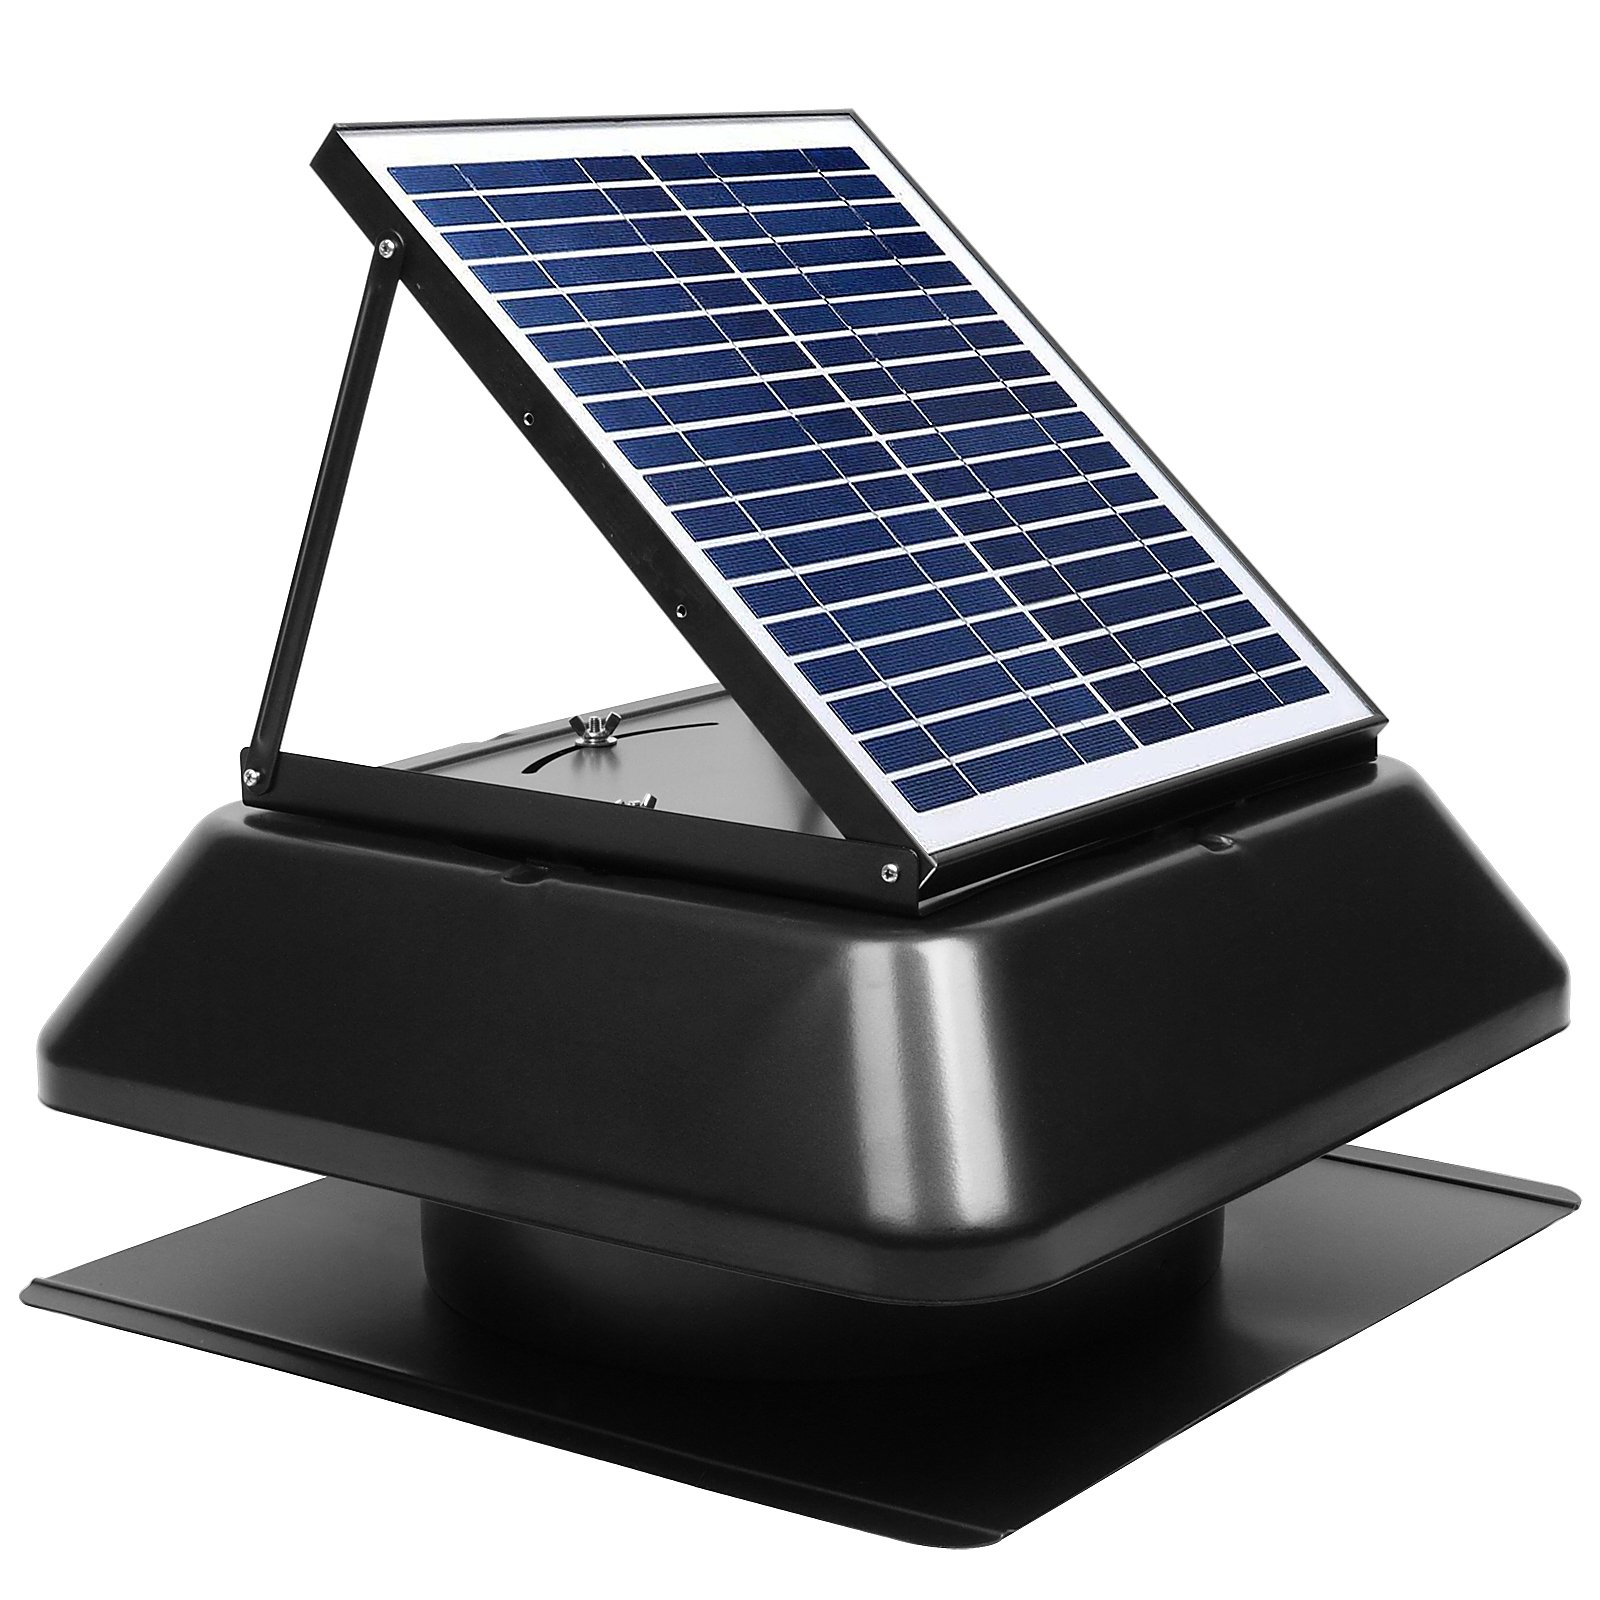 GBGS Solar Attic Fan 20W 1750 CFM, Adjustable Polycrystalline Solar Panel, Rust Free Roof Mounted, Easy Installation, Noise Less Than 45lb, 14in Air Duct For Garage, Hot, Environment (20x20x13in)